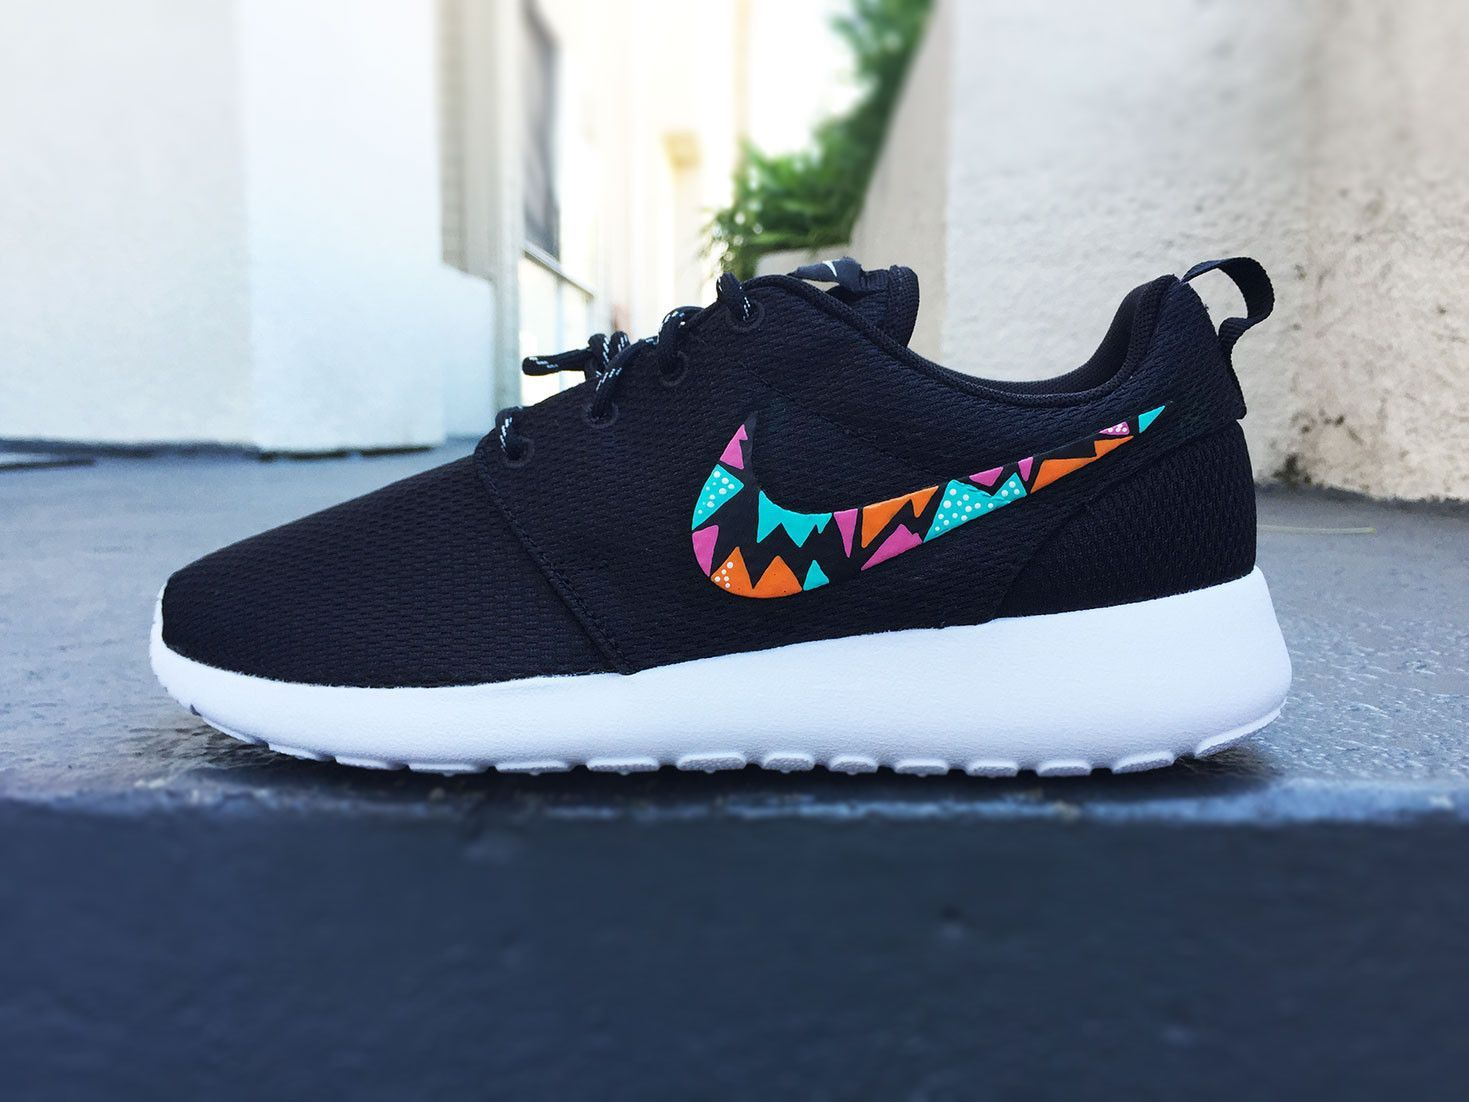 low priced 1e19a 9bffe Womens Custom Nike Roshe Run sneakers, triangle tribal design, hot pink,  teal and orange, trendy fashion design, cute womens shoes